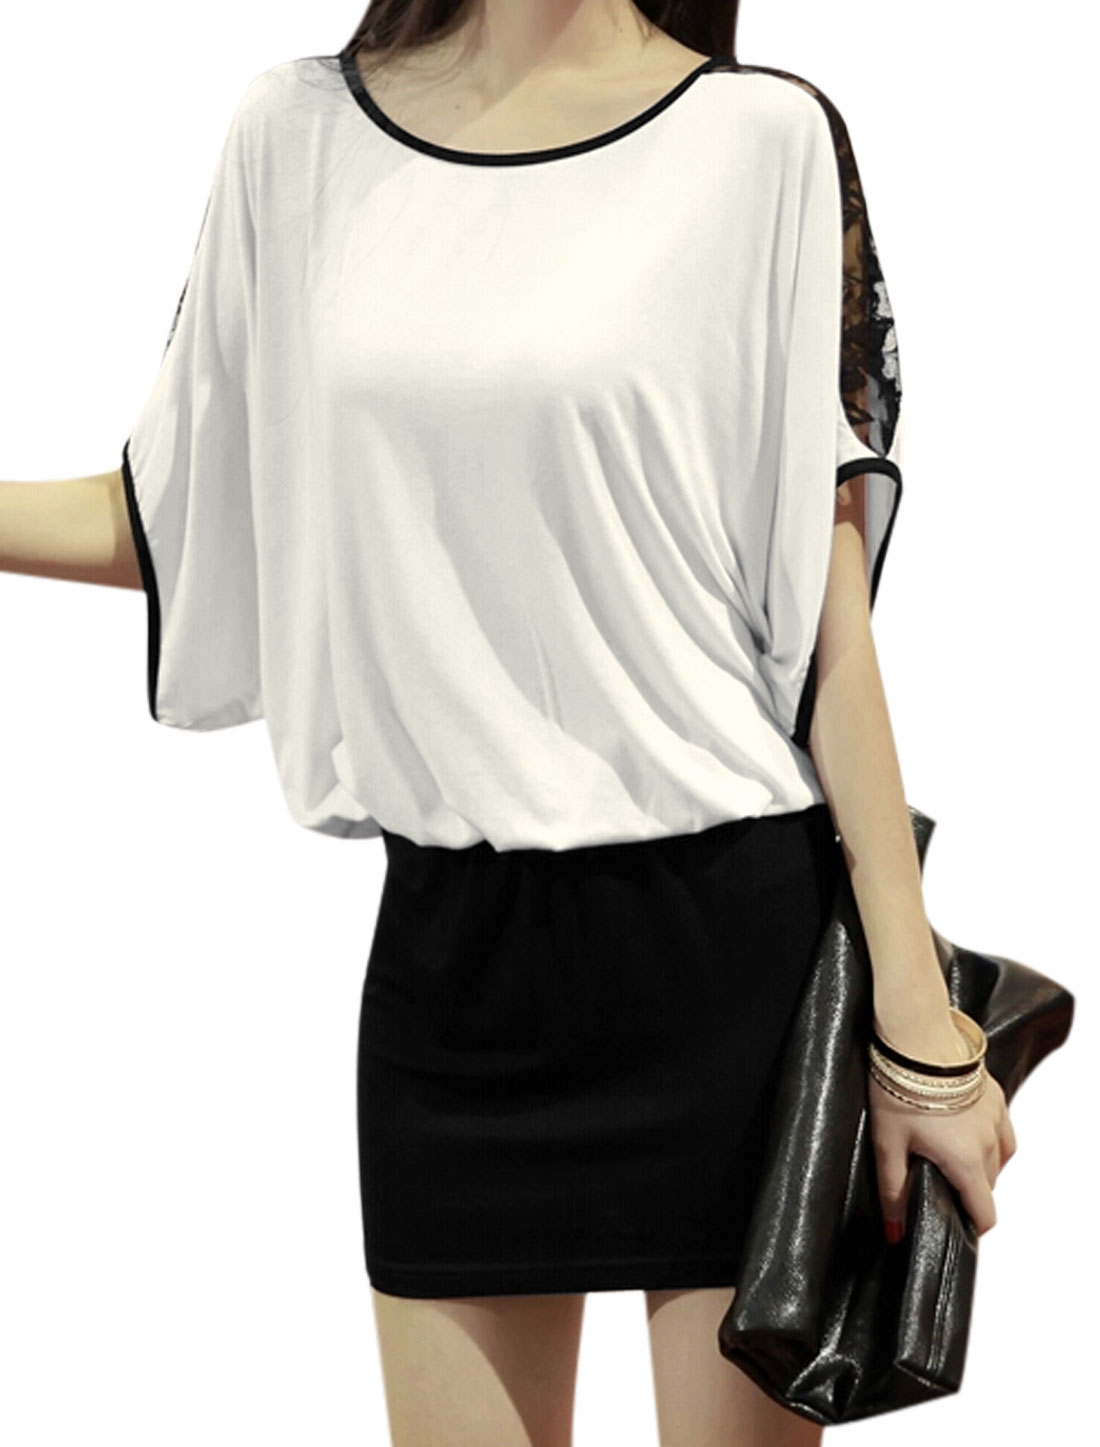 Lady Batwing Short Sleeve Lace Spliced Casual Tunic Top Black White S